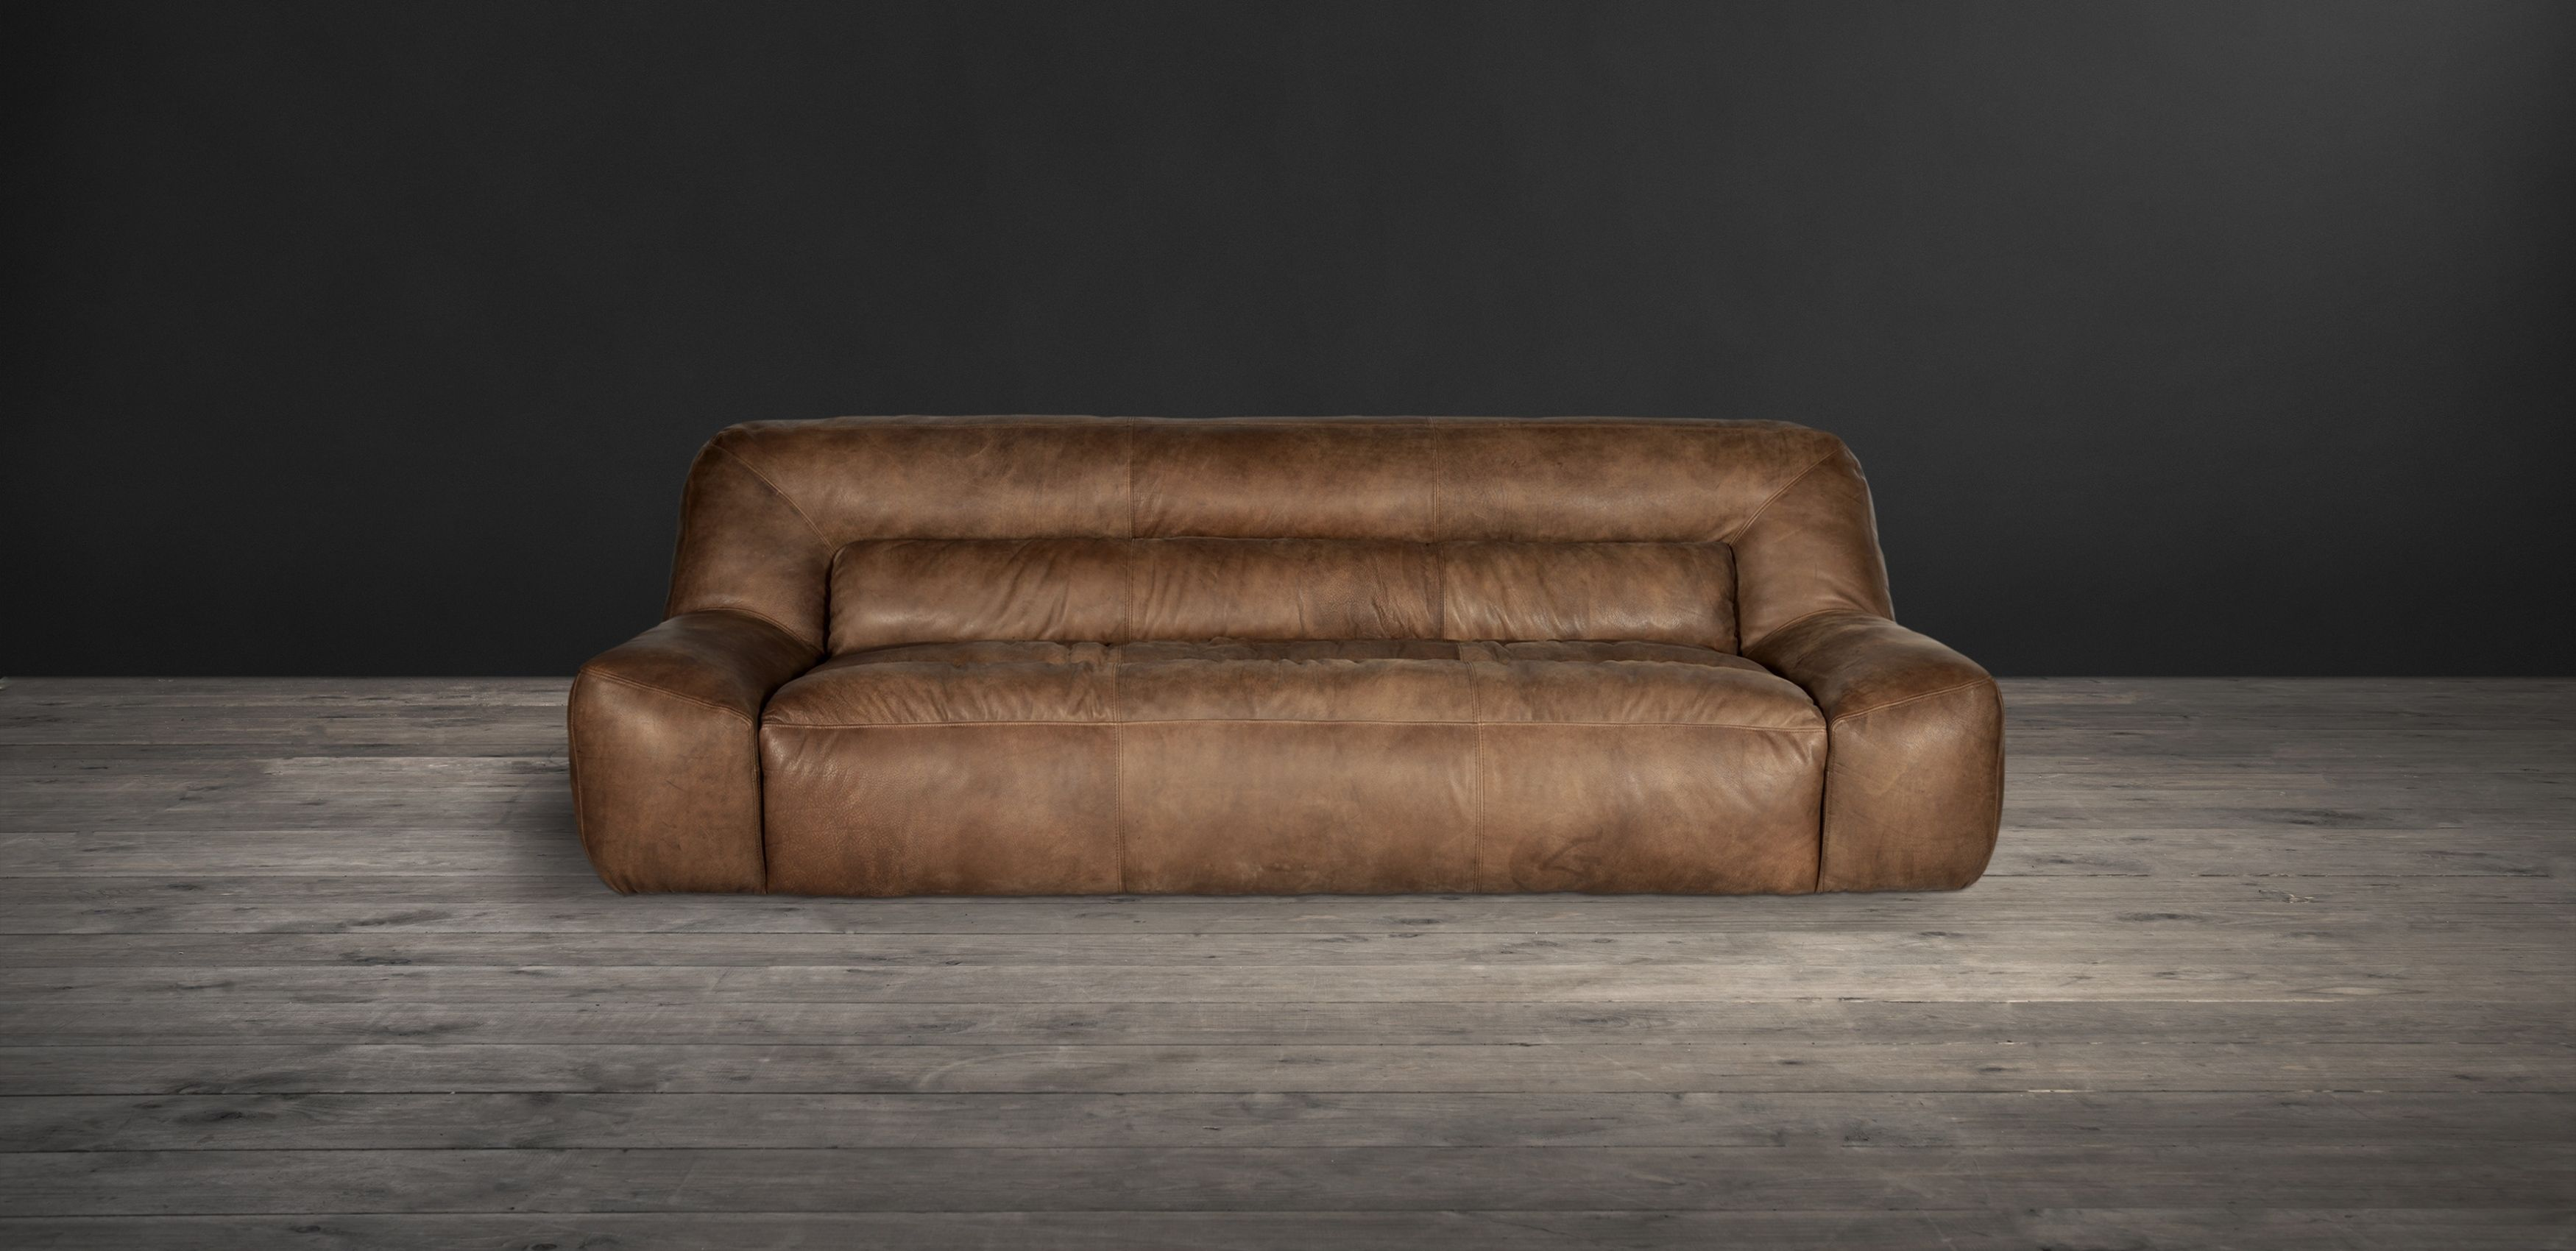 The Soft And Squidgy Yet Ever So Cool Bendum Sofa Is Outed In Rich Vintage Looking Leather Daringly Distinctive Furniture By Timothy Oulton